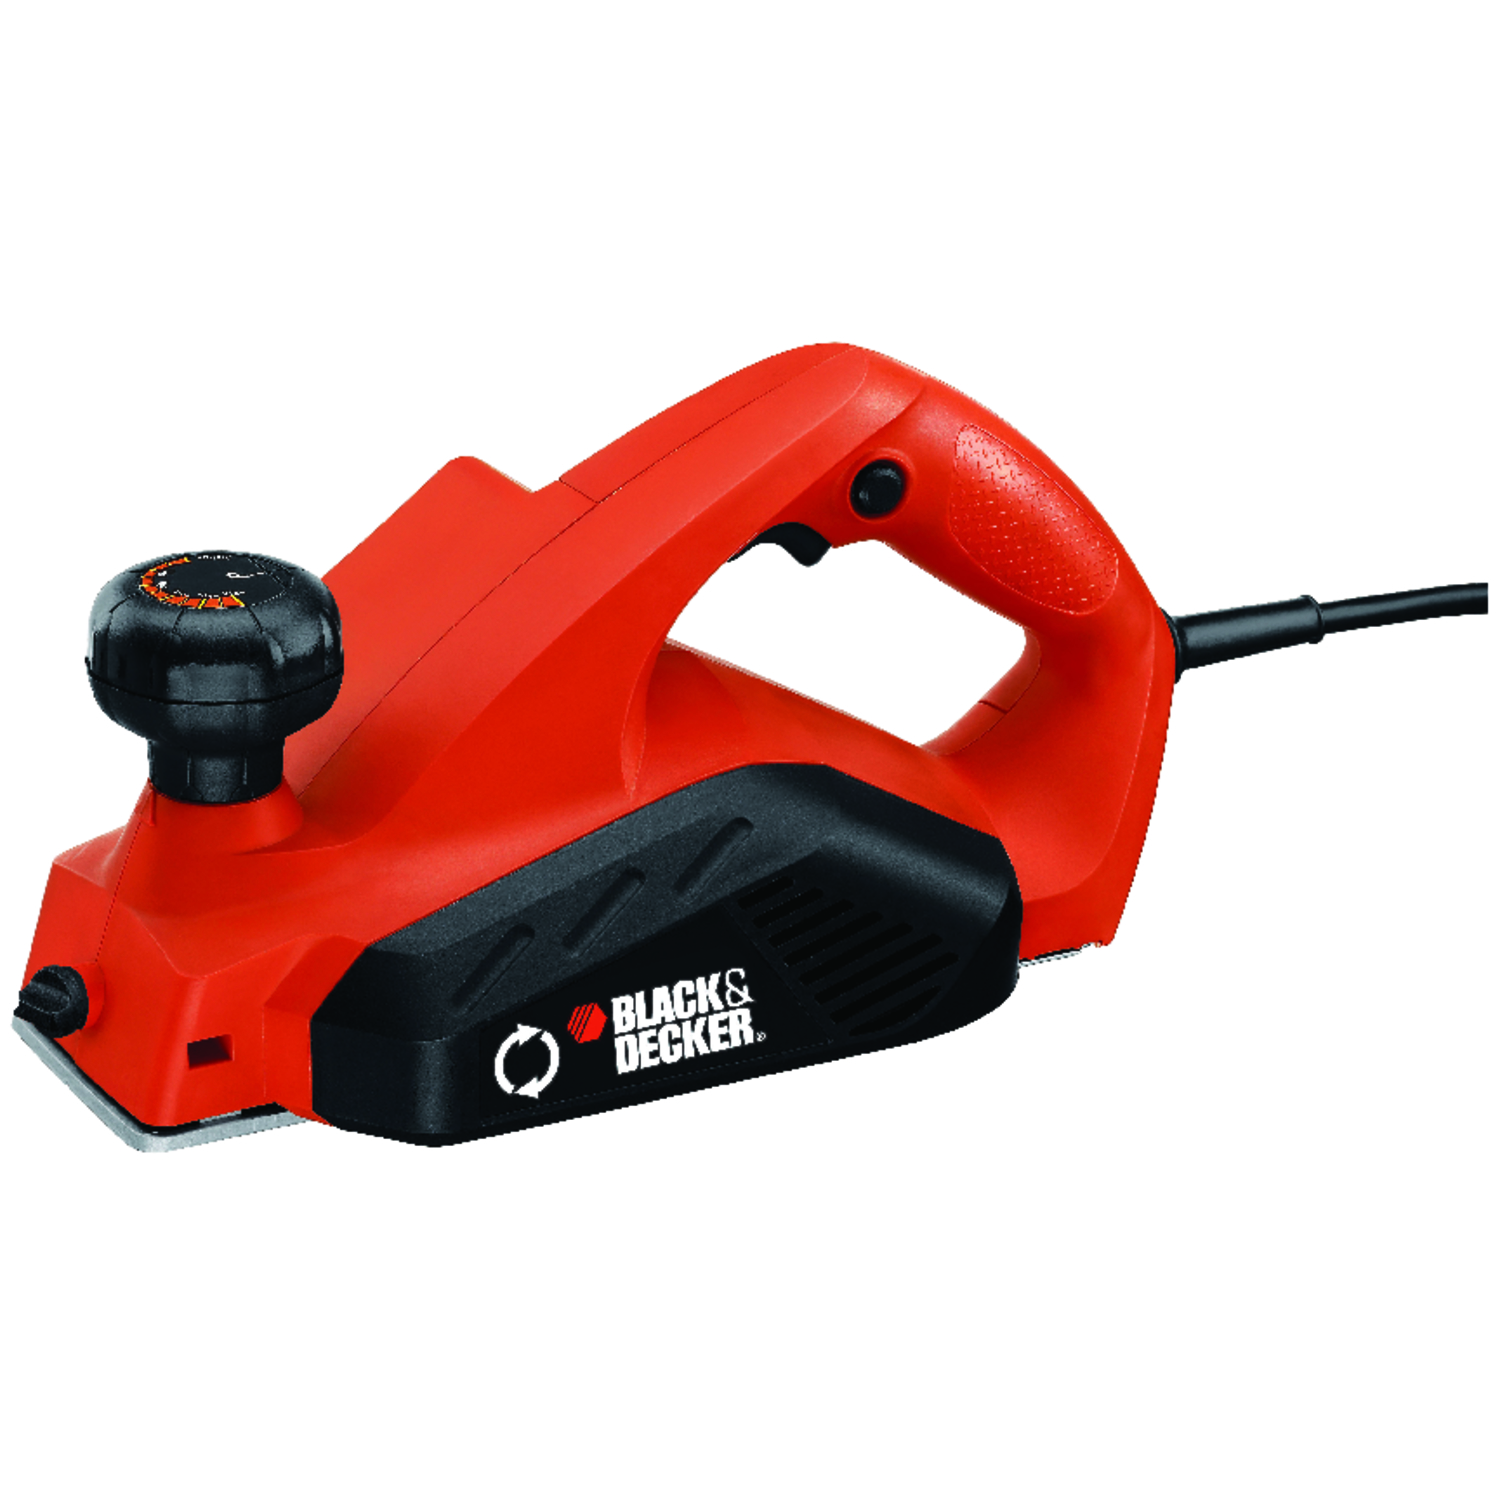 Black and Decker  1/8 in. D Planer  Kit Corded  4 blade